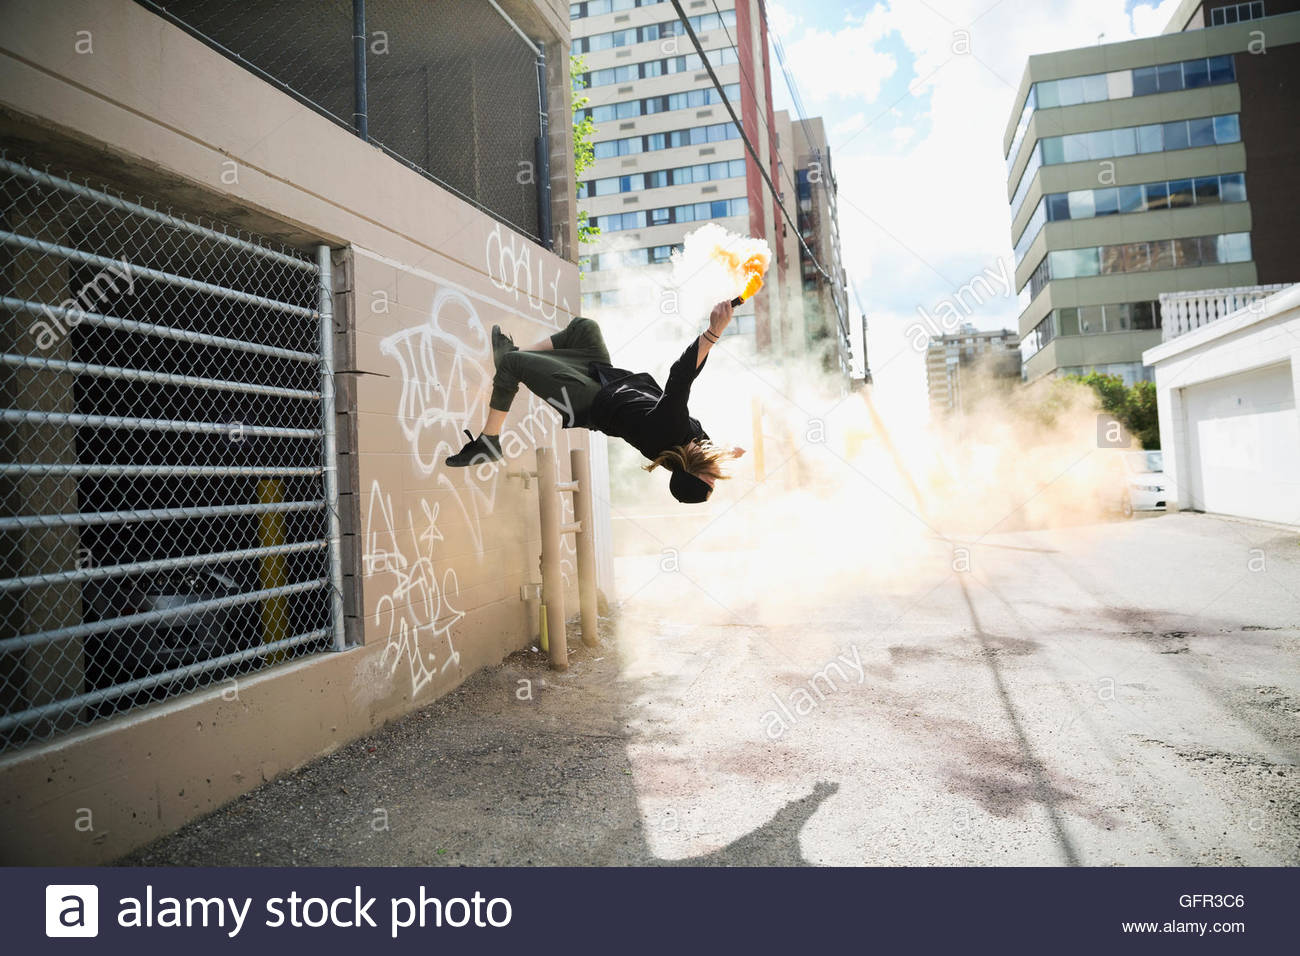 Cool young man doing parkour backflipping with powder cannon in urban alley - Stock Image